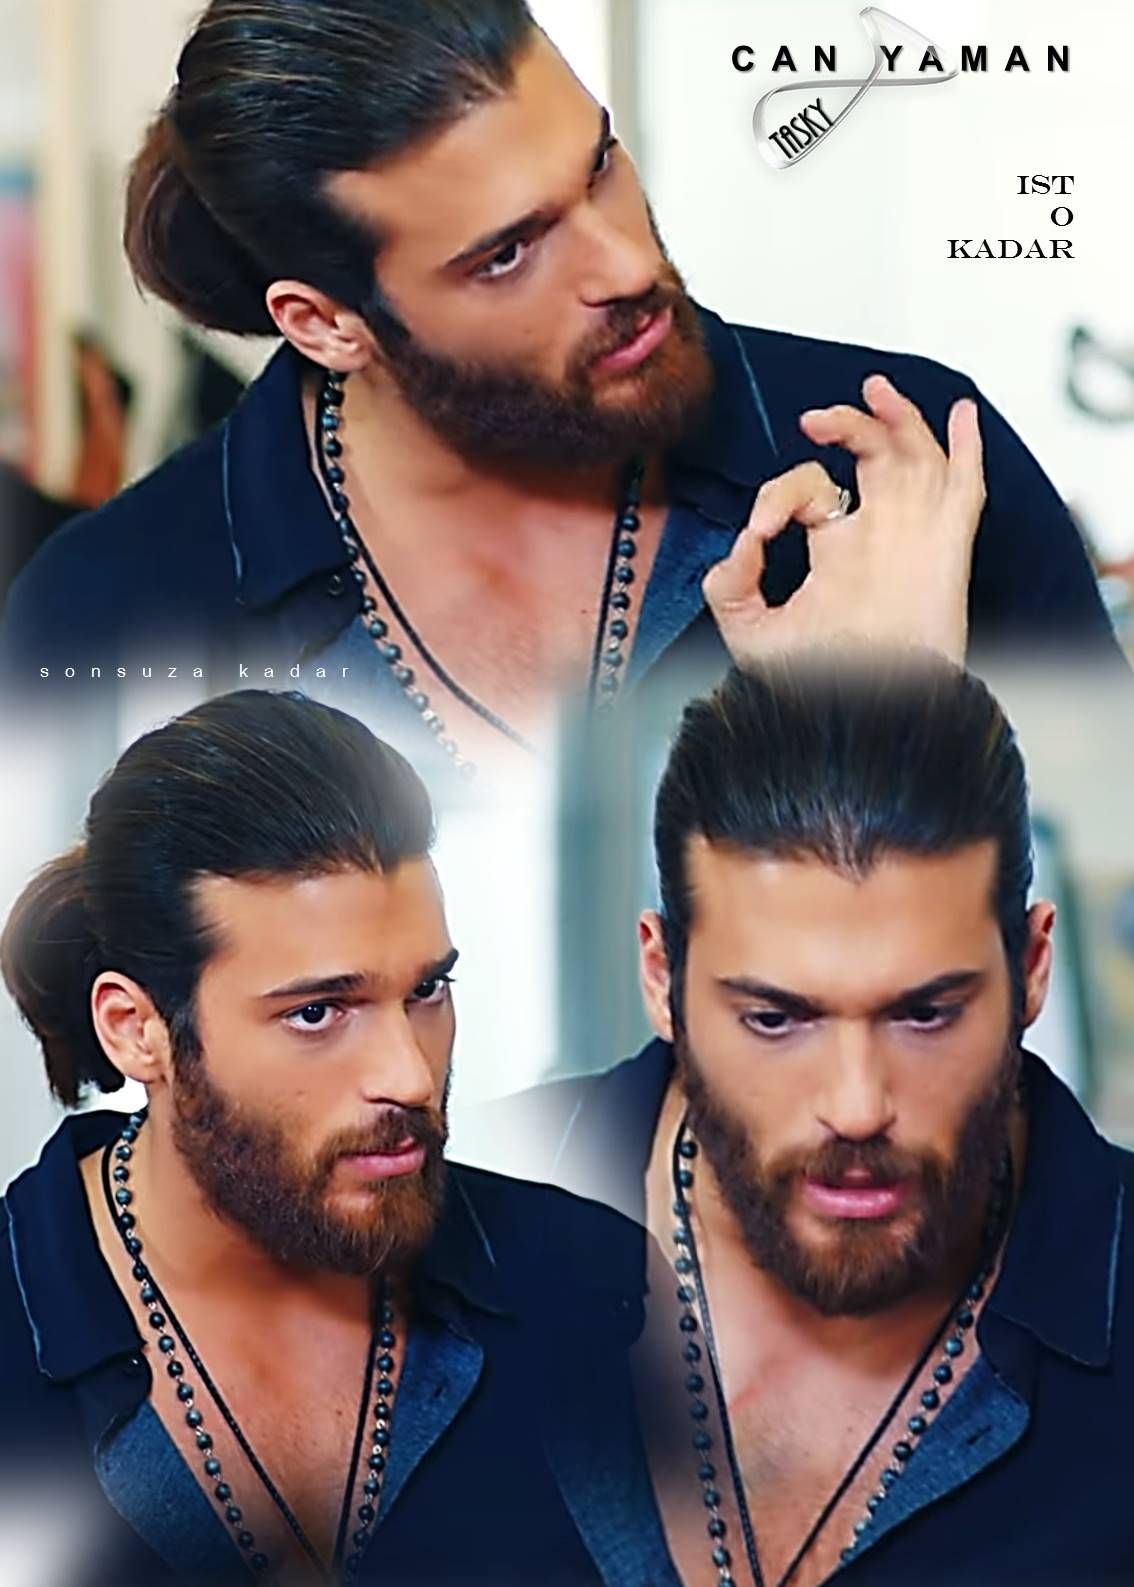 CAN YAMAN | CAN YAMAN by TaskY in 2019 | Canning, Celebrities